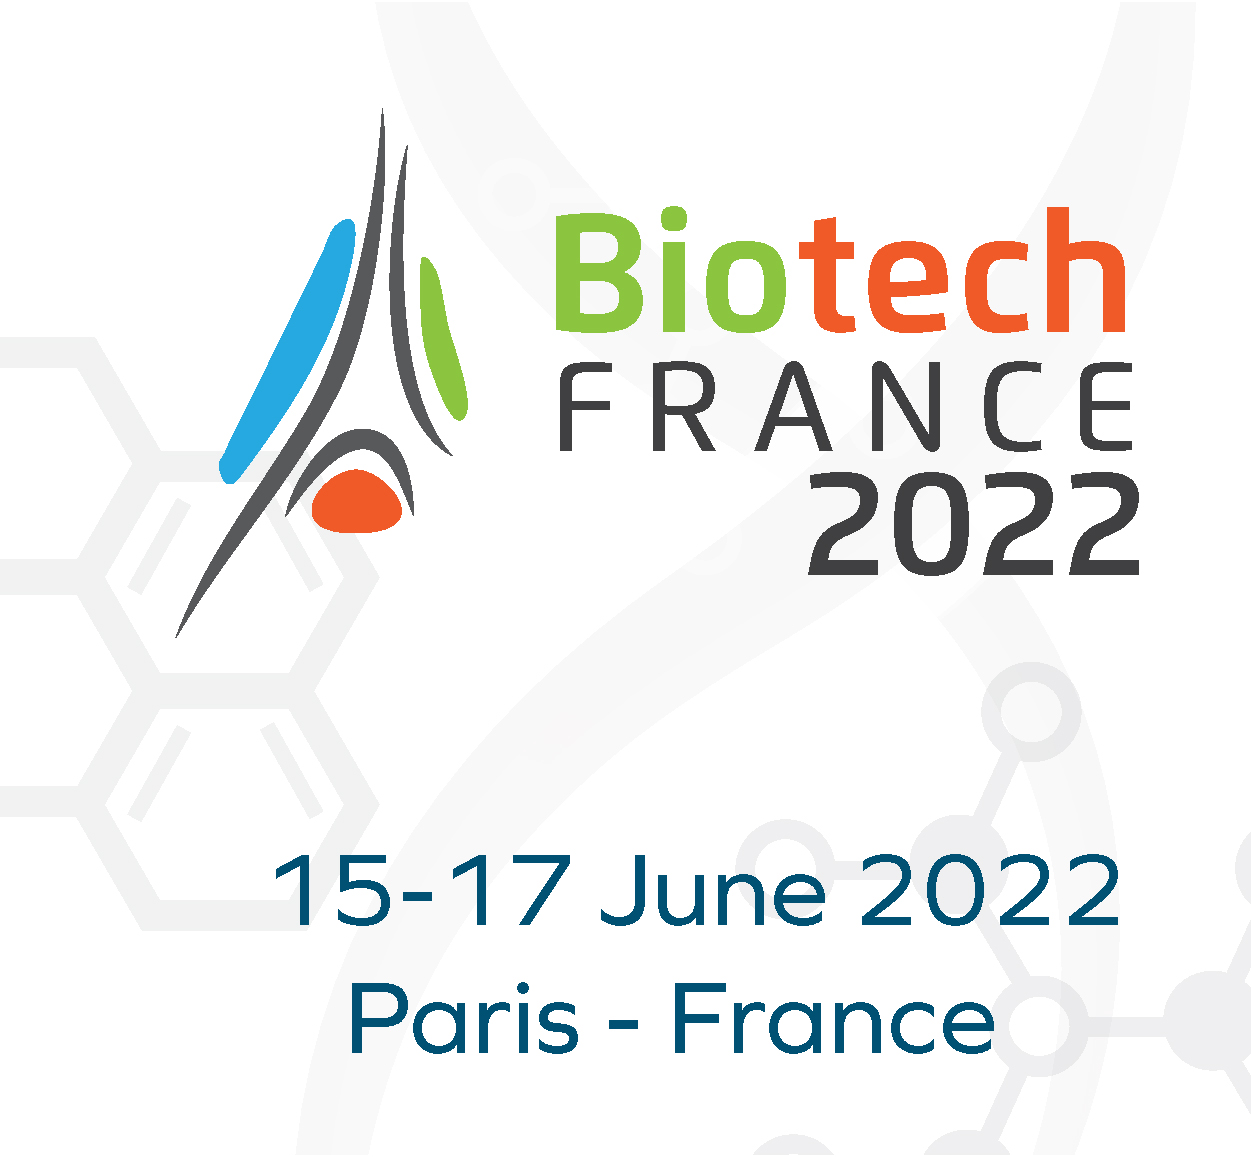 Biotech France 2022 international conference and exhibition, 15 - 17 June 2022, Paris, France